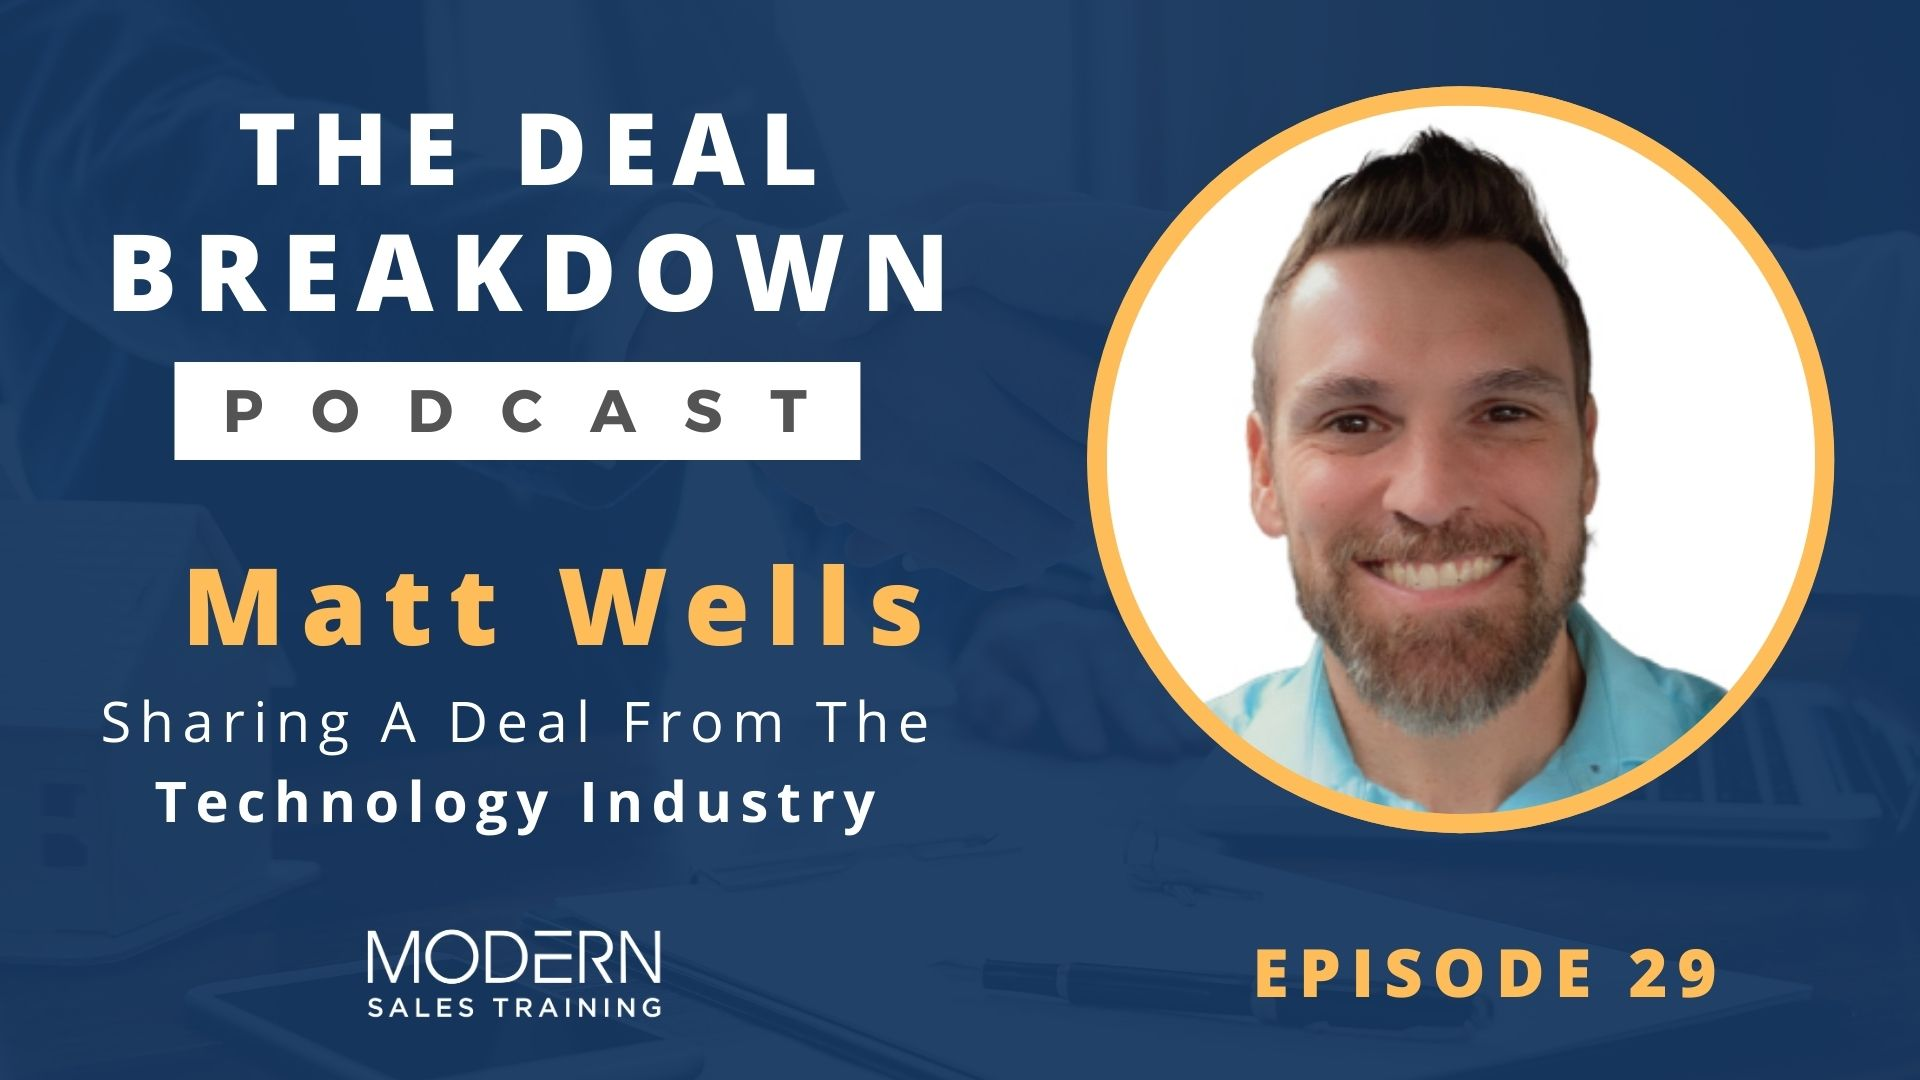 deal-breakdown-podcast-modern-sales-training-matt-wells-cover